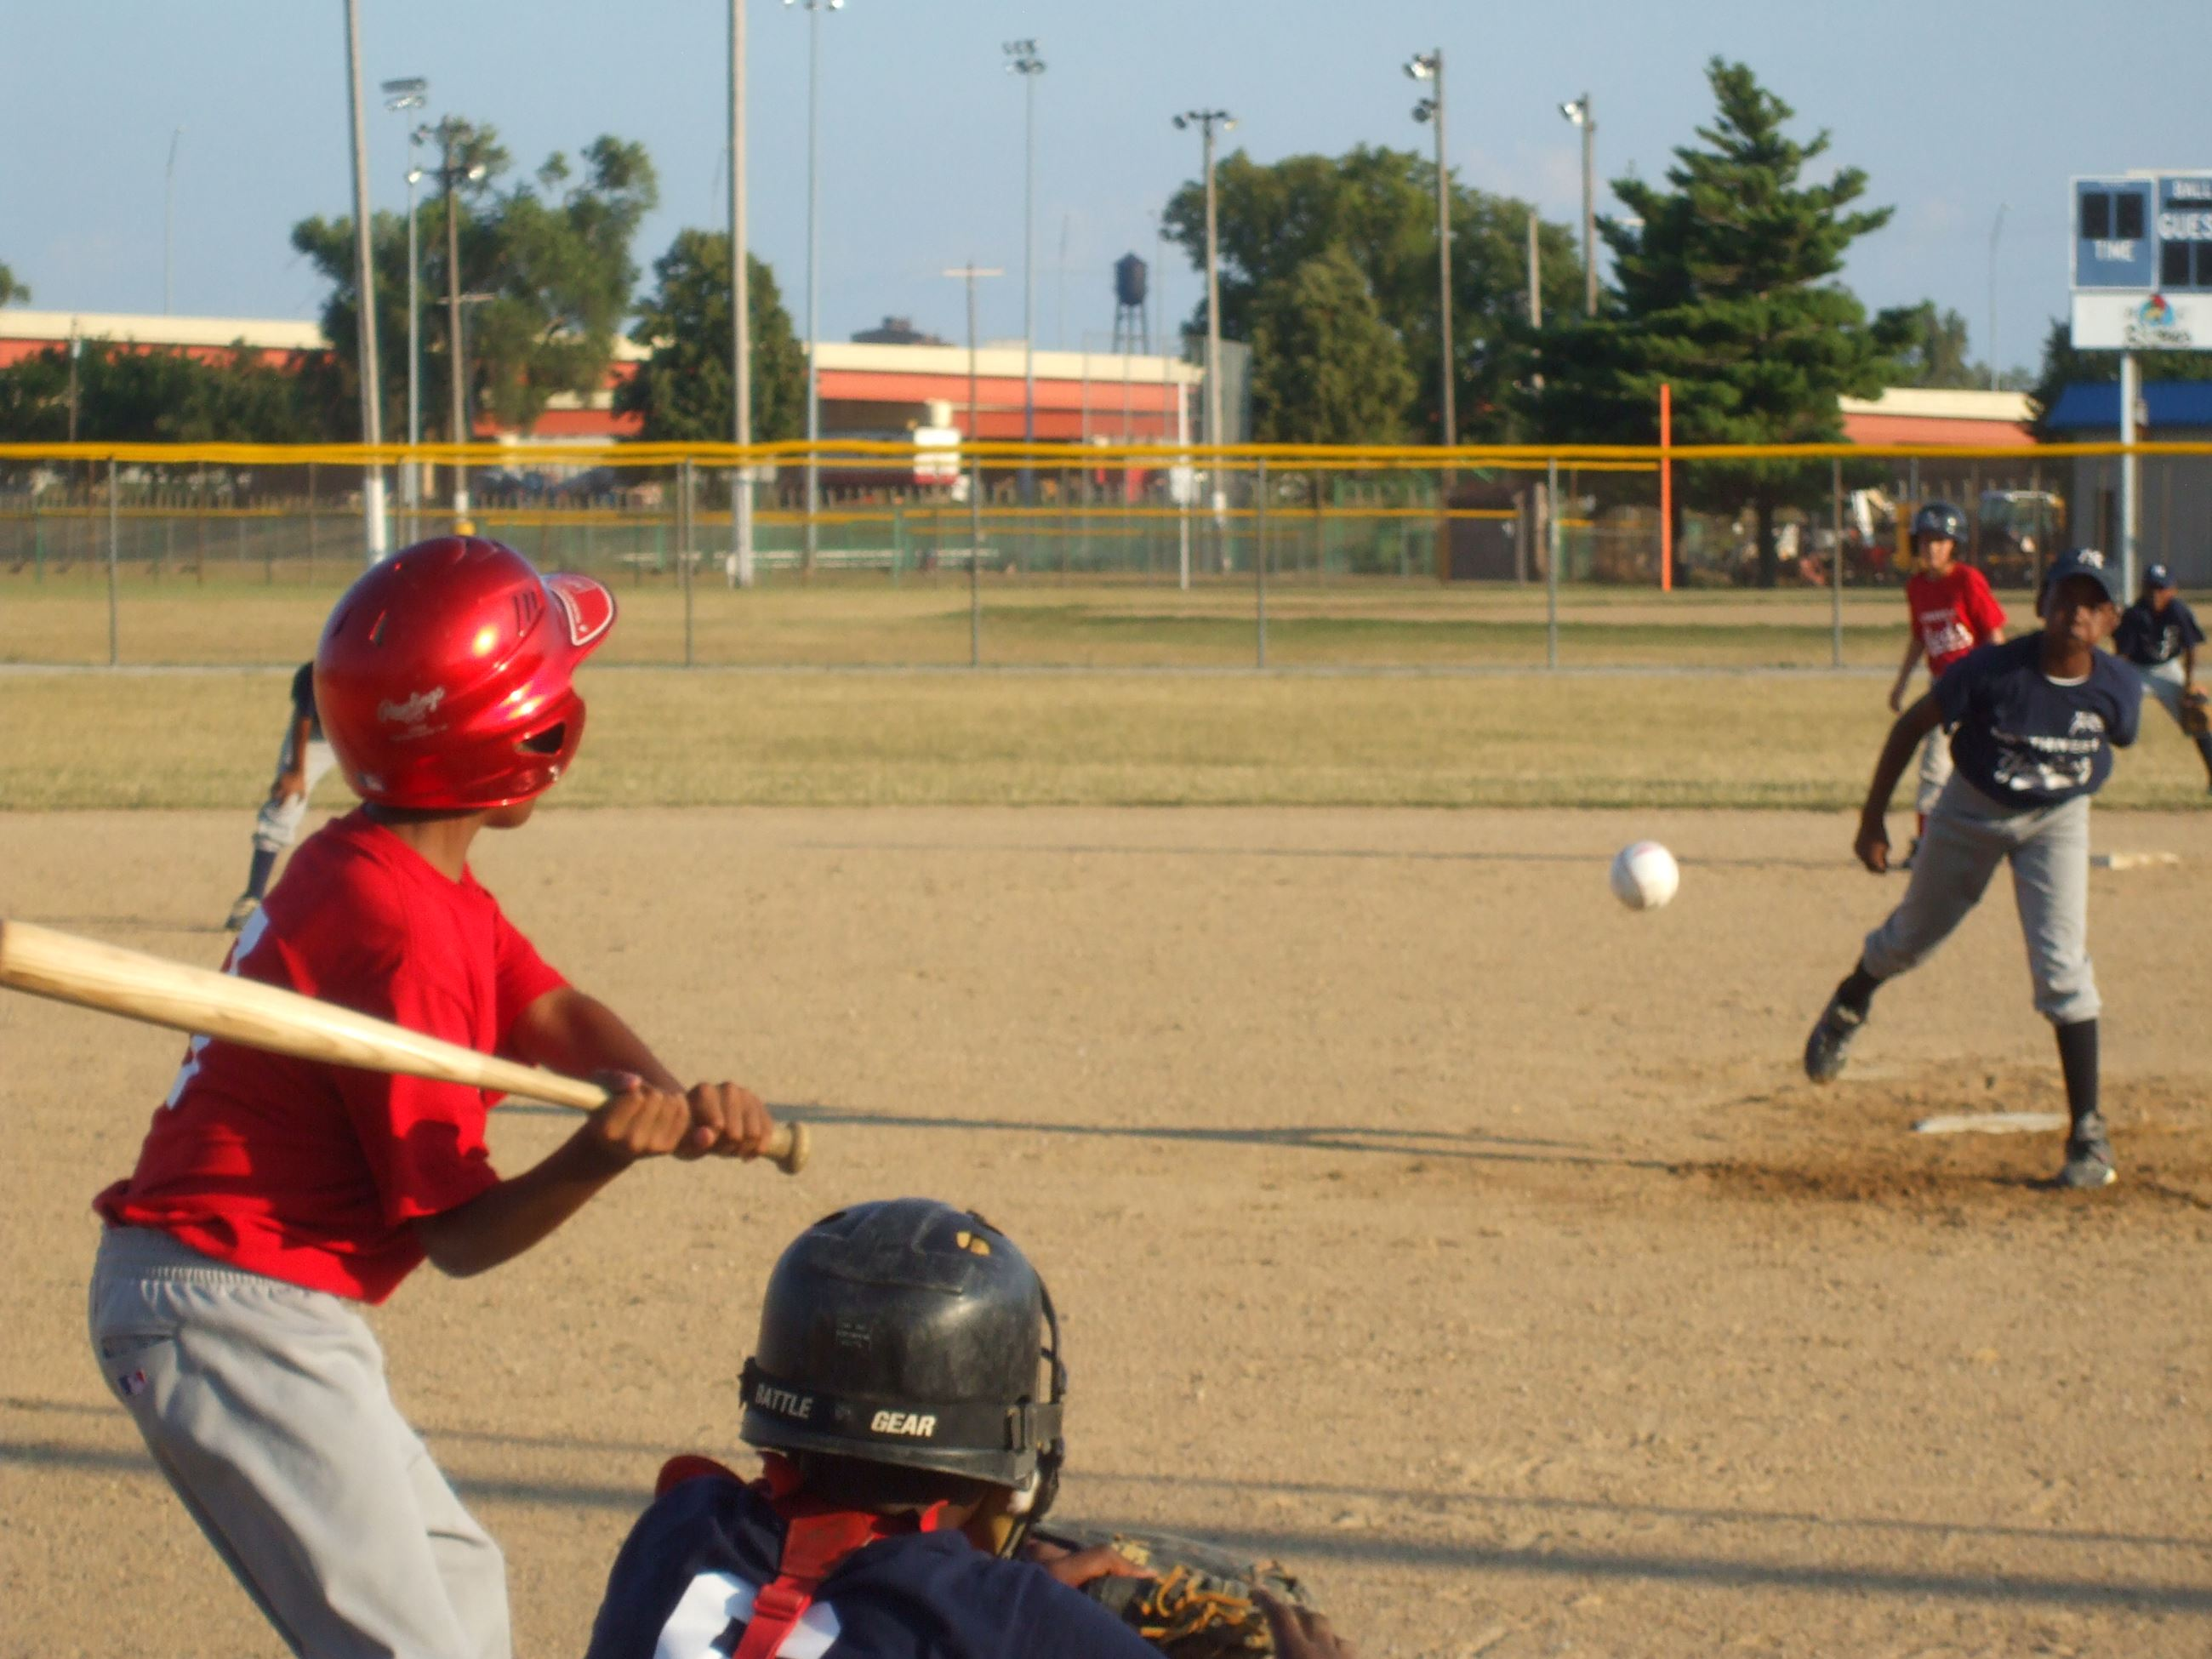 Baseball being pitched with child ready to swing bat